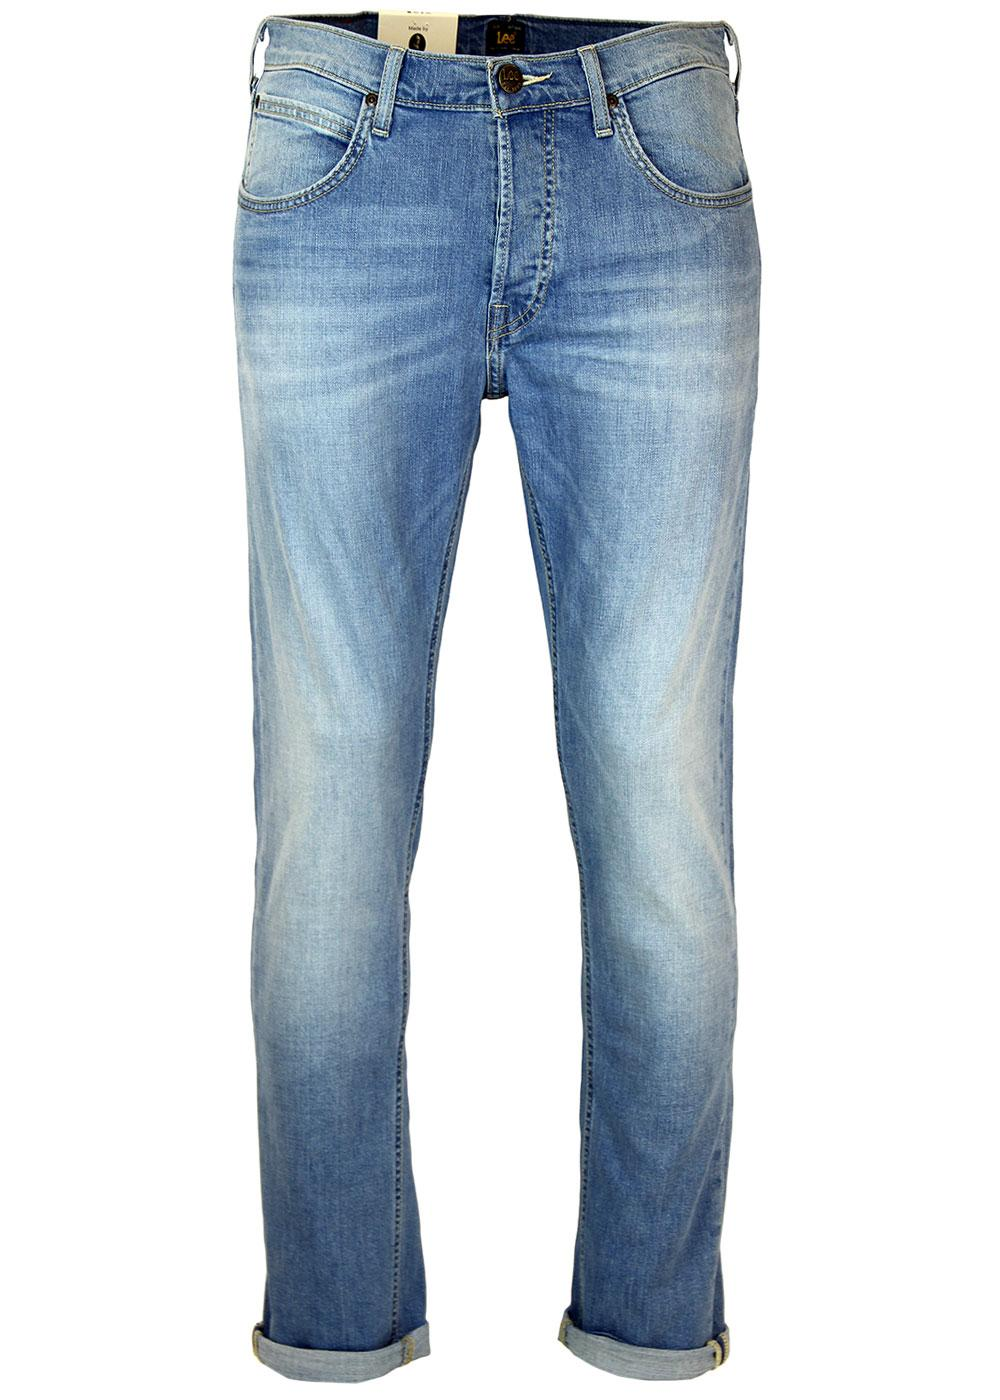 Daren LEE Retro Mod Regular Slim Denim Jeans (CO)